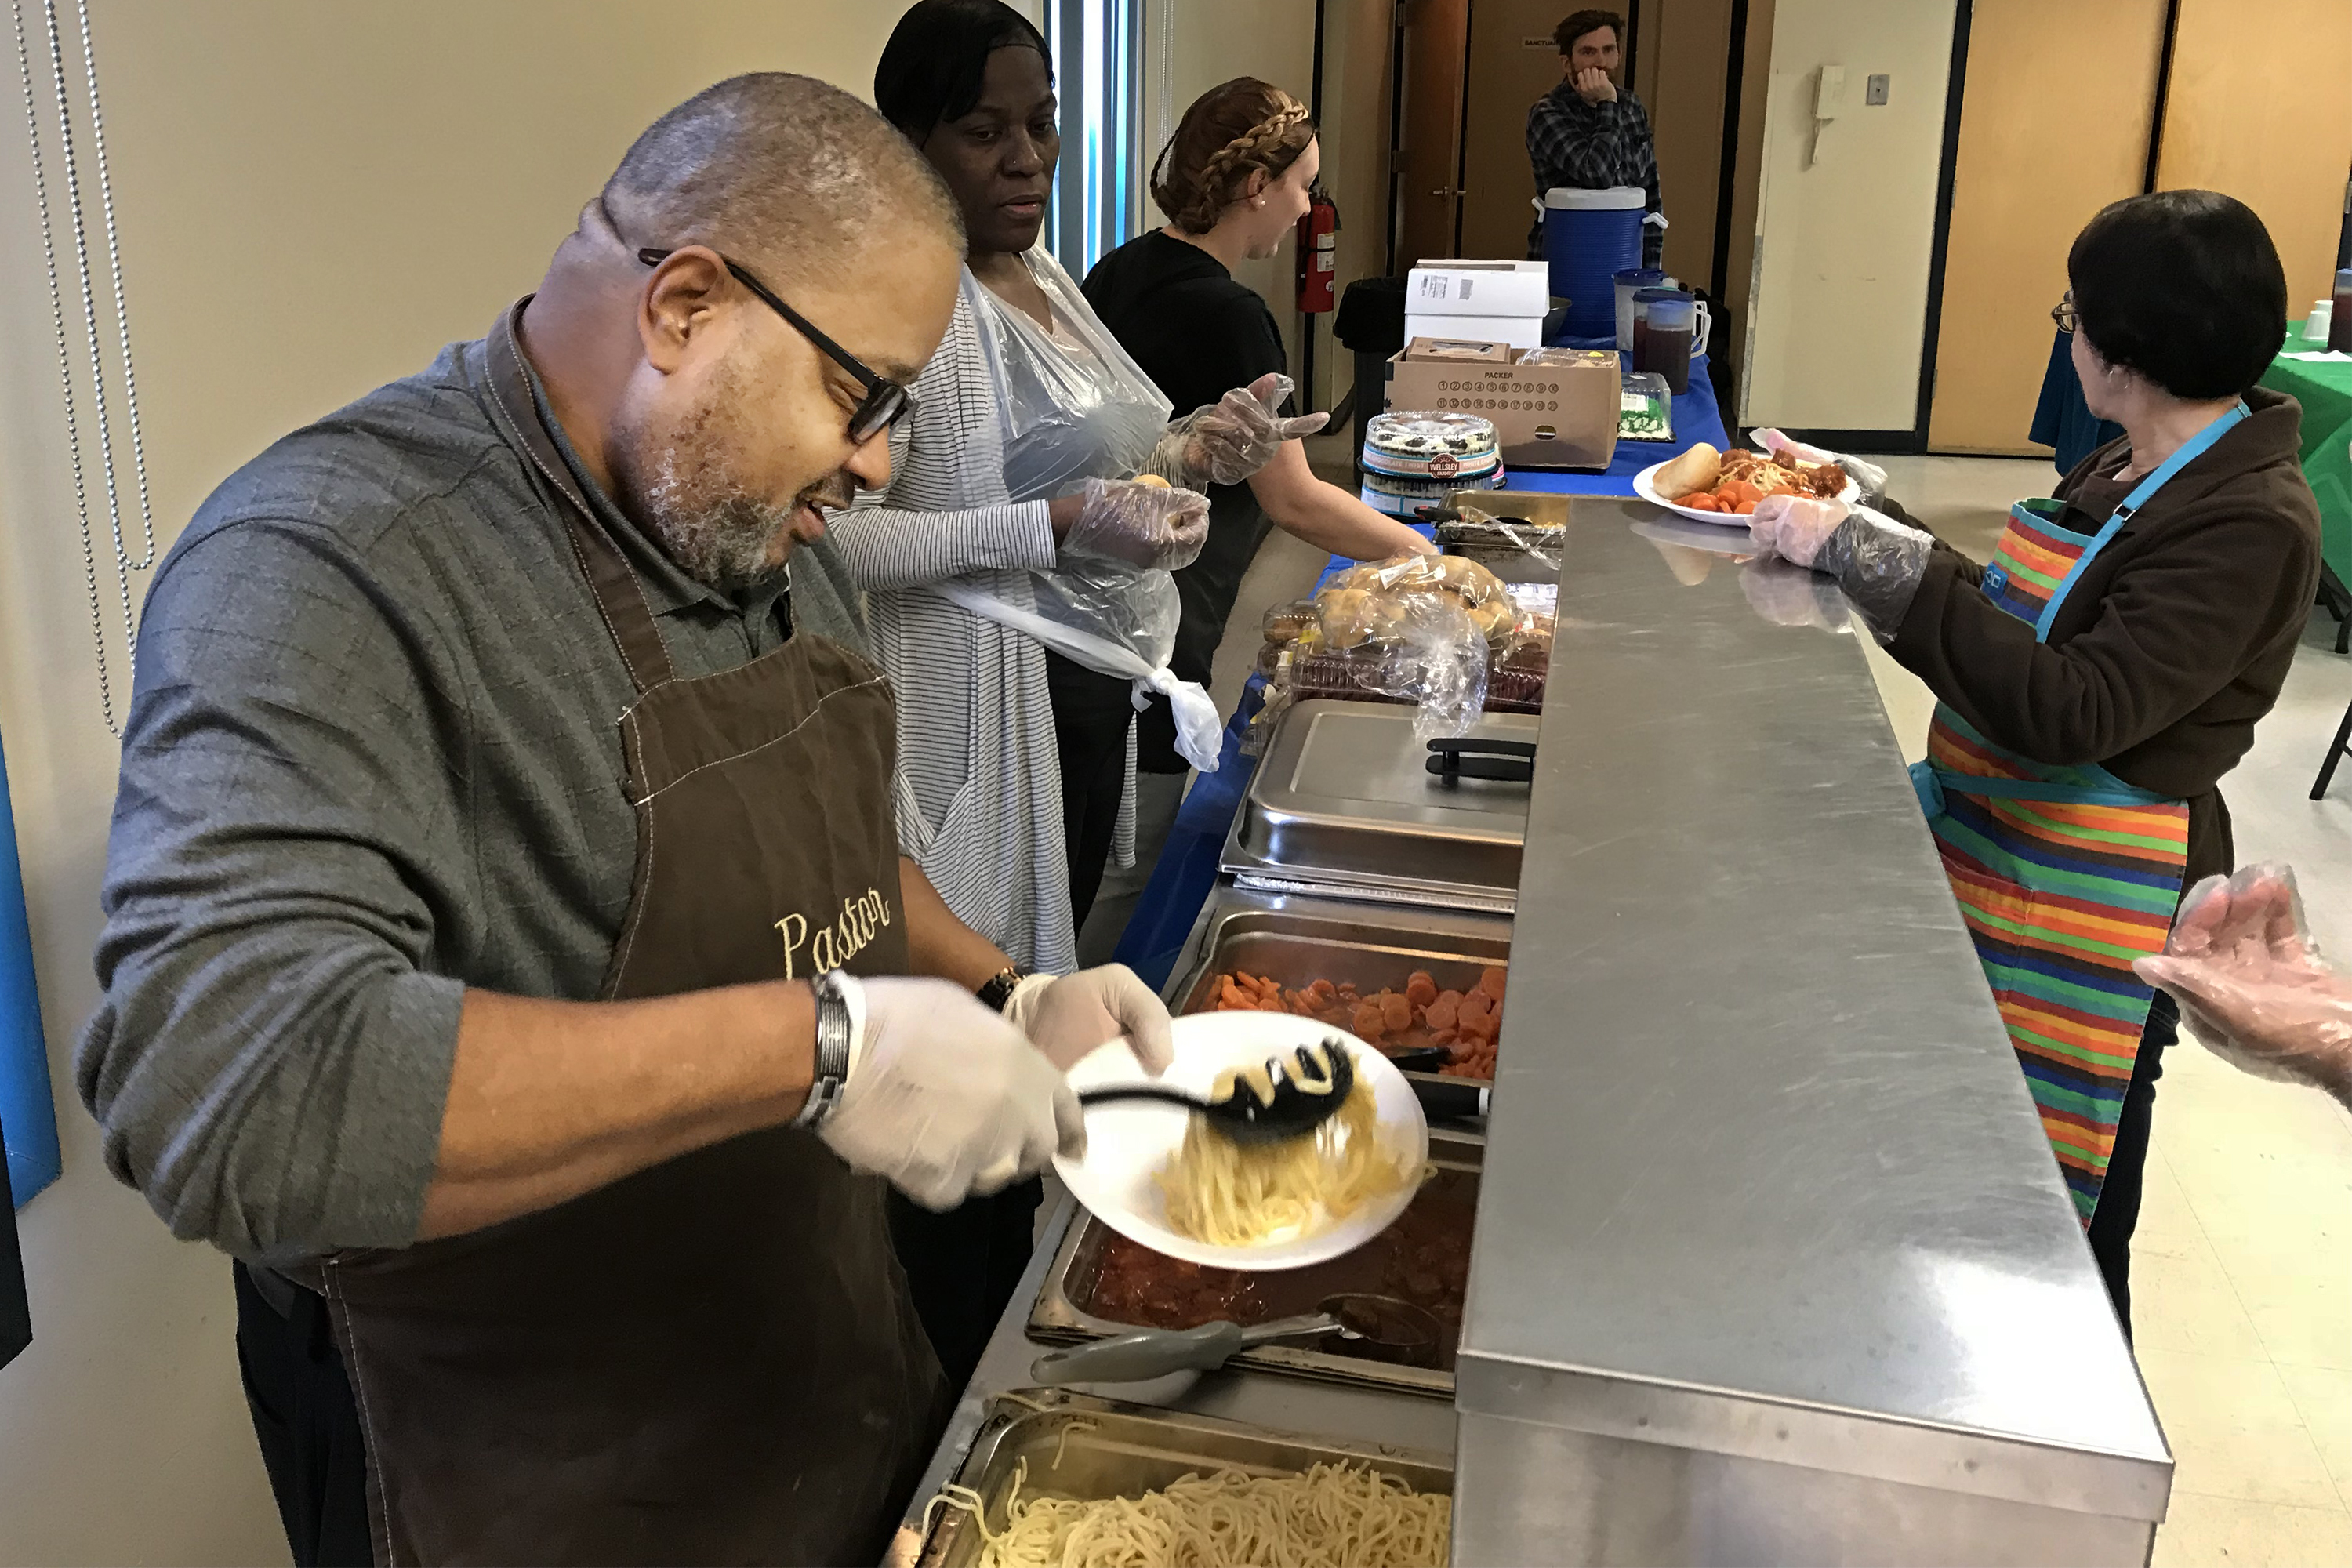 Bethel A.M.E. pastor Charles E. Wilkins, Sr. fills a plate with pasta, on February 6, 2018, as he works the food line at the church's soup kitchen, that serves hot meals four times a week, restaurant style to the needy in Millville, NJ. MICHAEL BRYANT / Staff Photographer